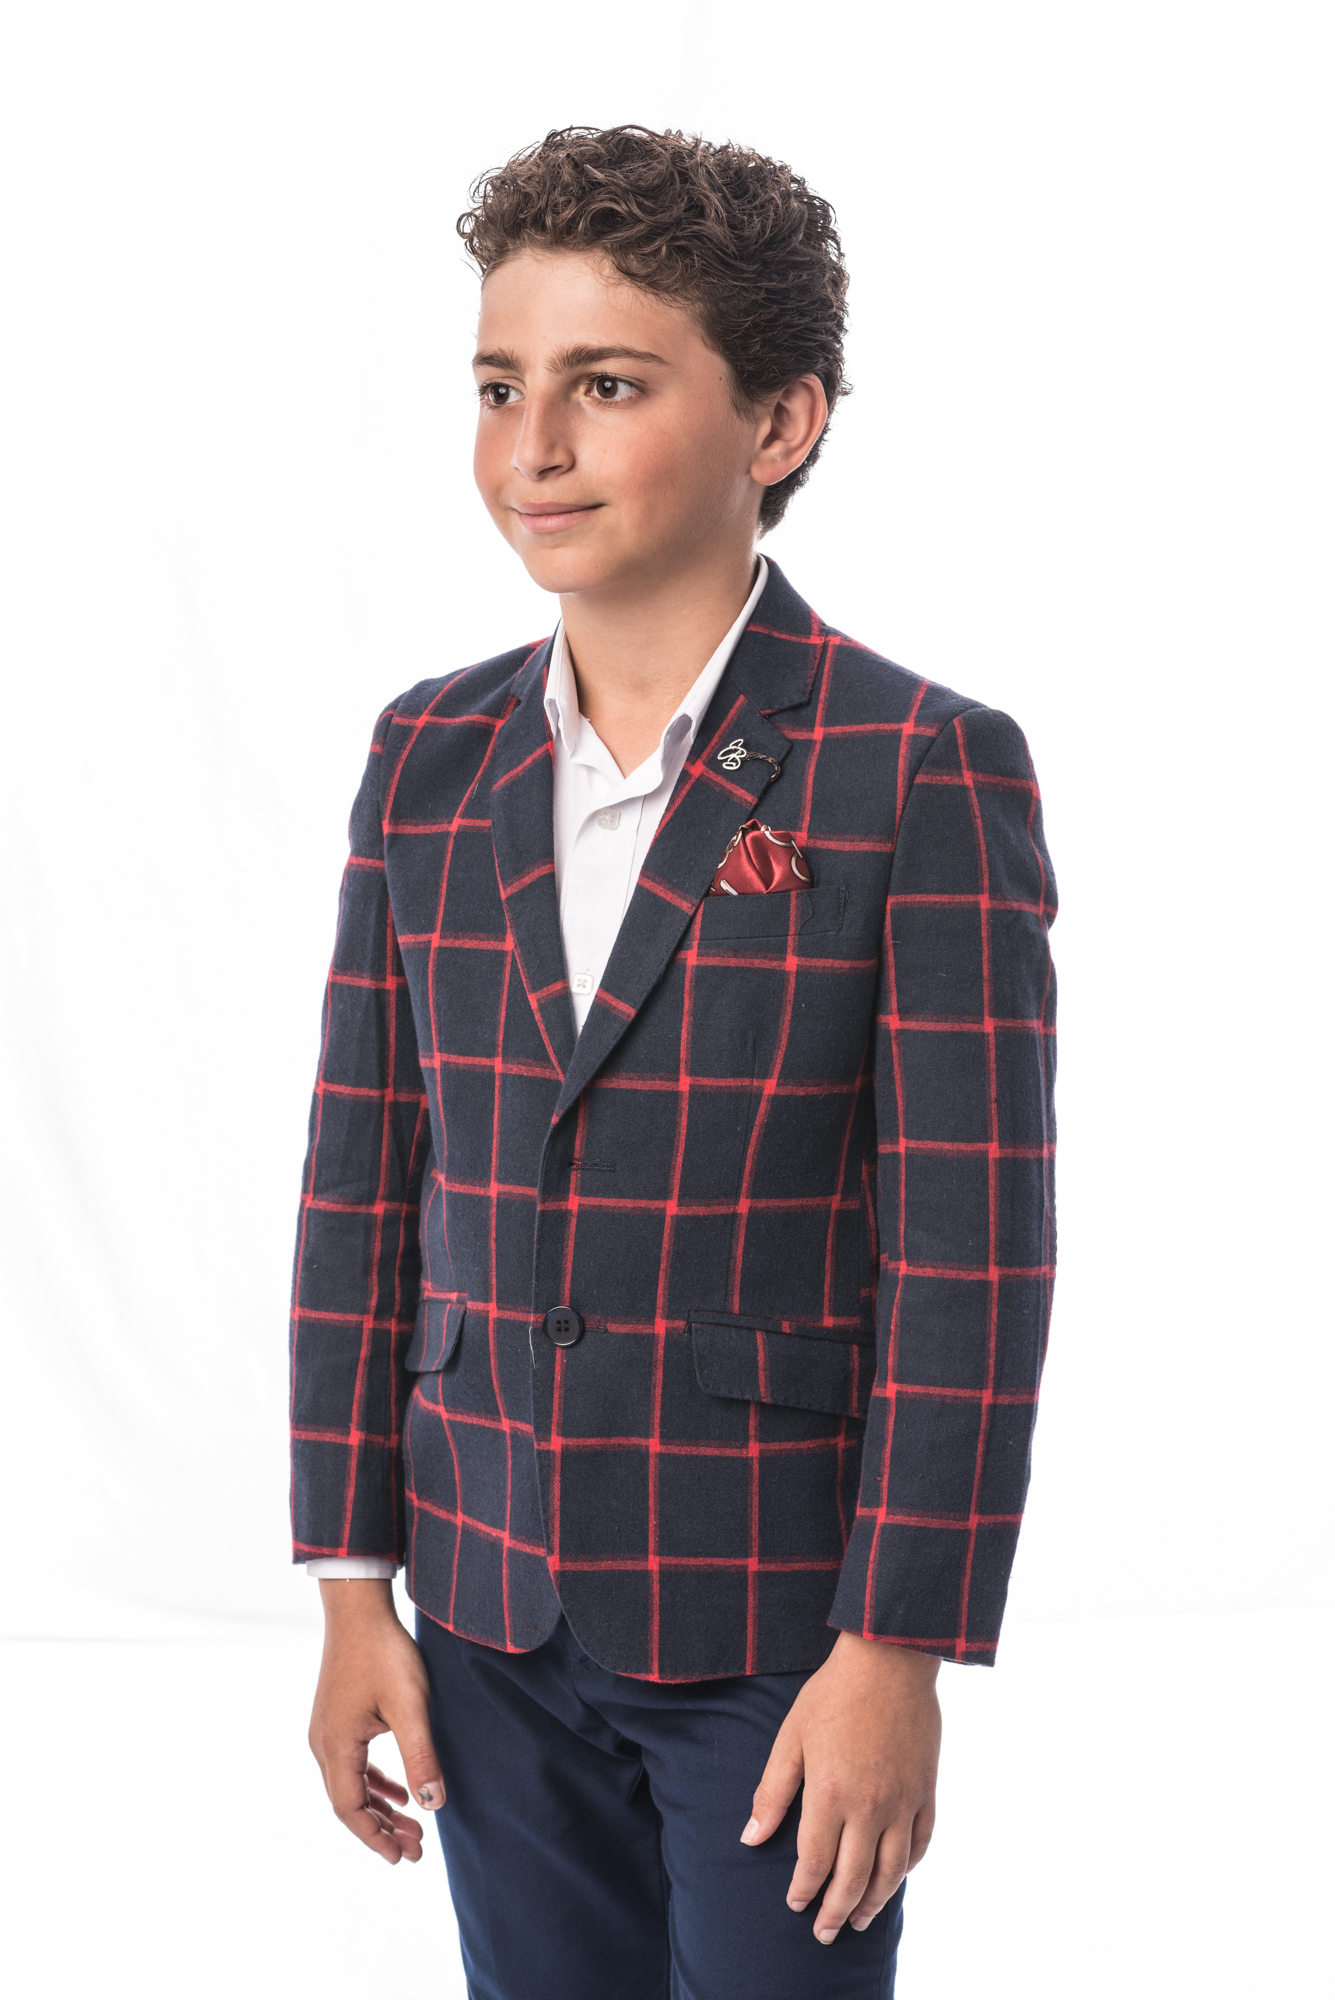 Fading Plaid Boys Blazers / Sports Coat Jacket EBBS1678